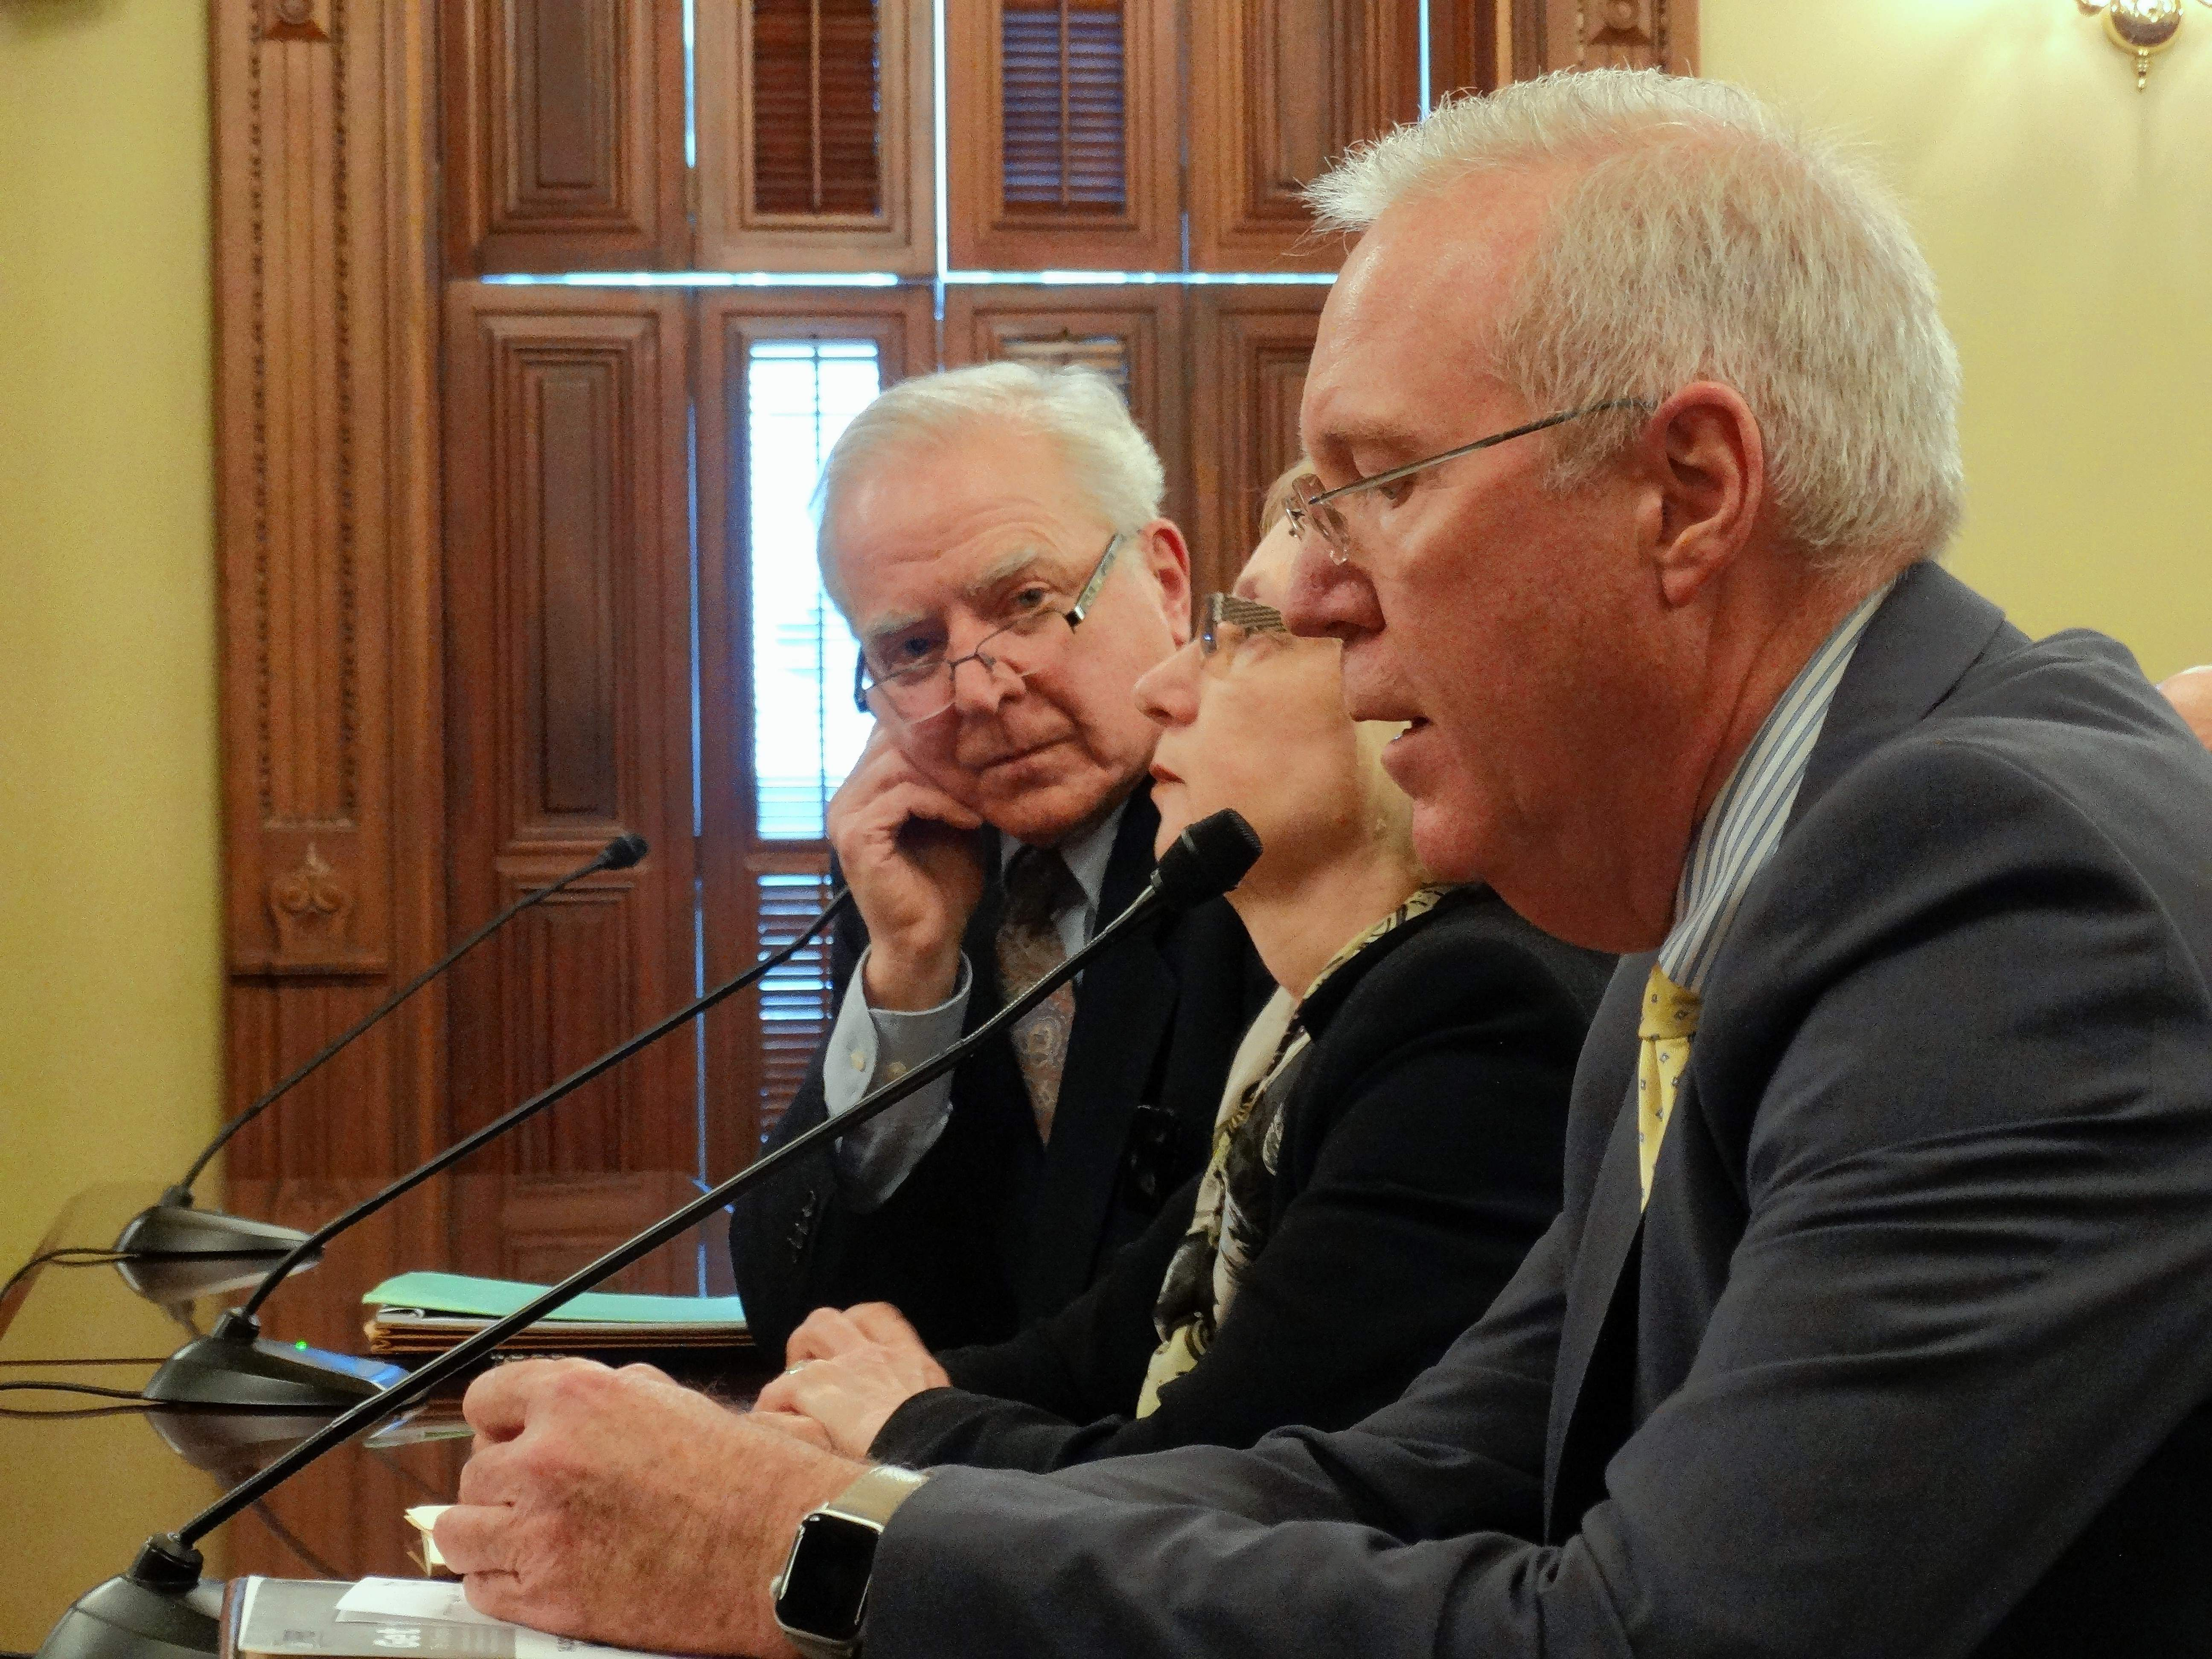 """Dan Reitz (front), a lobbyist for the Illinois Oil and Gas Association, speaks against a bill that would require more public disclosure of hydraulic fracturing, or """"fracking"""" operations in the state, while Rep. Robyn Gabel, an Evanston Democrat, and Bill Rau of Illinois People's Action testify in favor Tuesday at the Capitol in Springfield."""